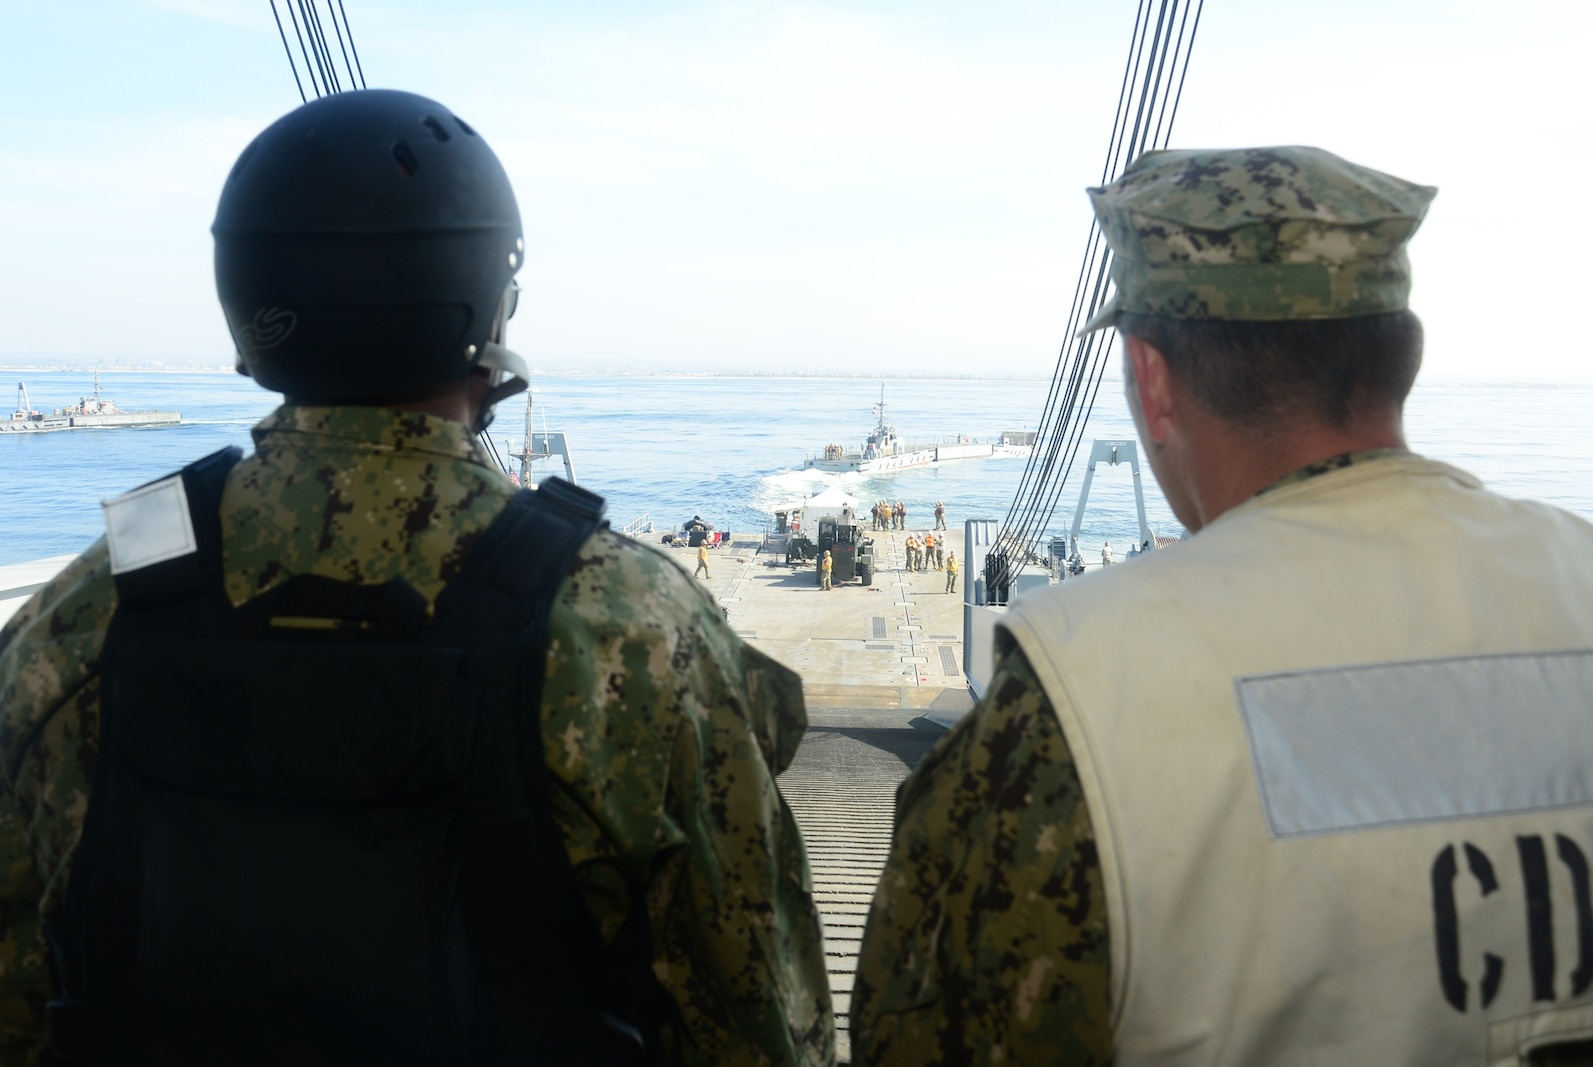 Rear Adm. Frank Ponds, commander of Expeditionary Strike Group Three, and Capt. Kevin Flanagan, commander of Naval Beach Group One, observe Improved Navy Lighterage System (INLS) Causeway Ferry 17 detach from the INLS Roll-on/Roll-off Discharge Facility during exercise Brilliant Scepter 2014. Brilliant Scepter 2014 is an exercise providing ship-to-shore transportation of combat cargo for Navy amphibious forces and the Marine Corps. (U.S. Navy photo by Mass Communication Specialist 2nd Class Scott Bigley/Released)